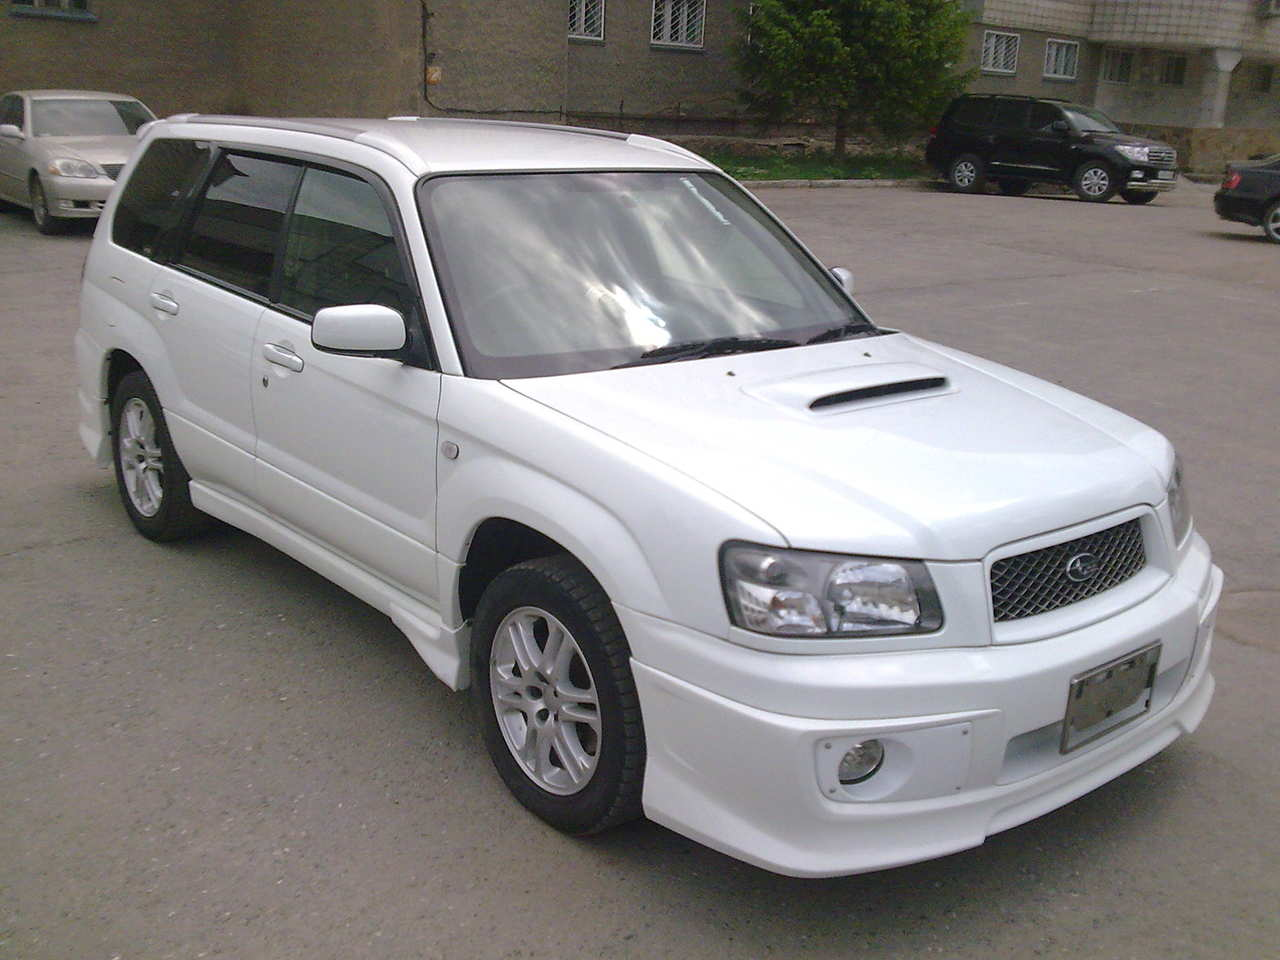 used 2004 subaru forester photos 2000cc gasoline manual for sale. Black Bedroom Furniture Sets. Home Design Ideas